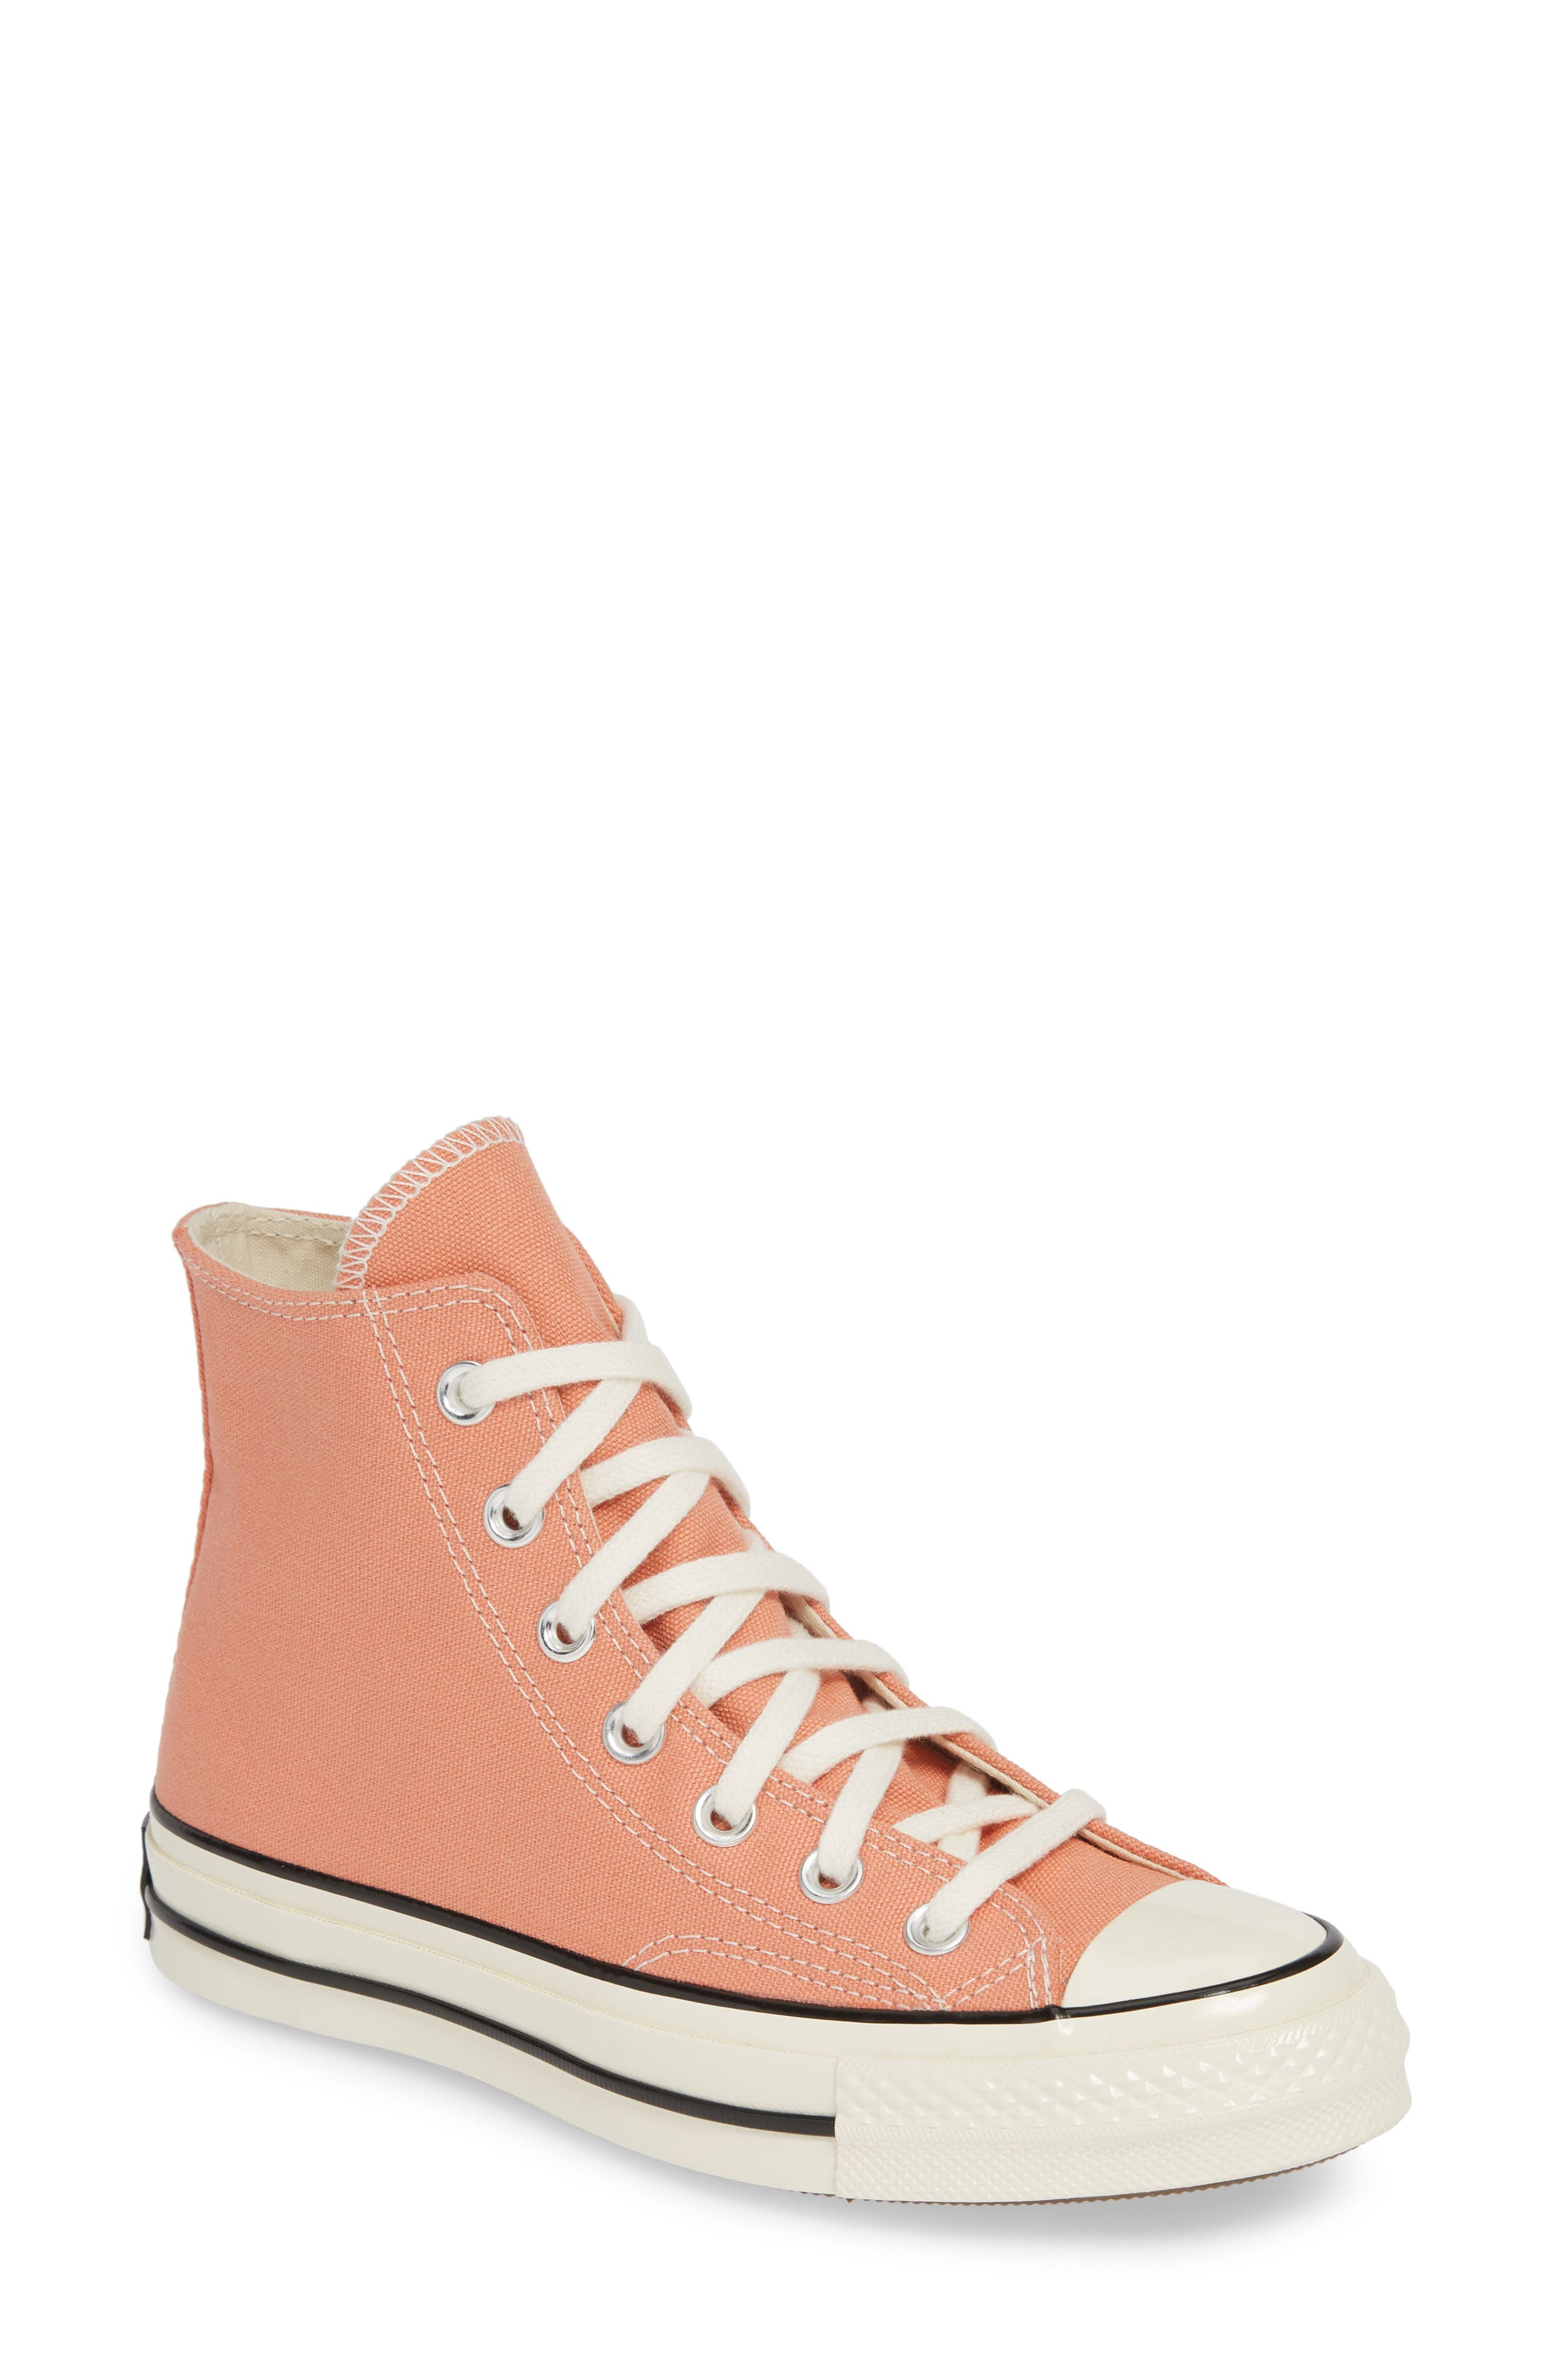 Converse Chuck Taylor All Star 70 High Top Sneaker, Coral